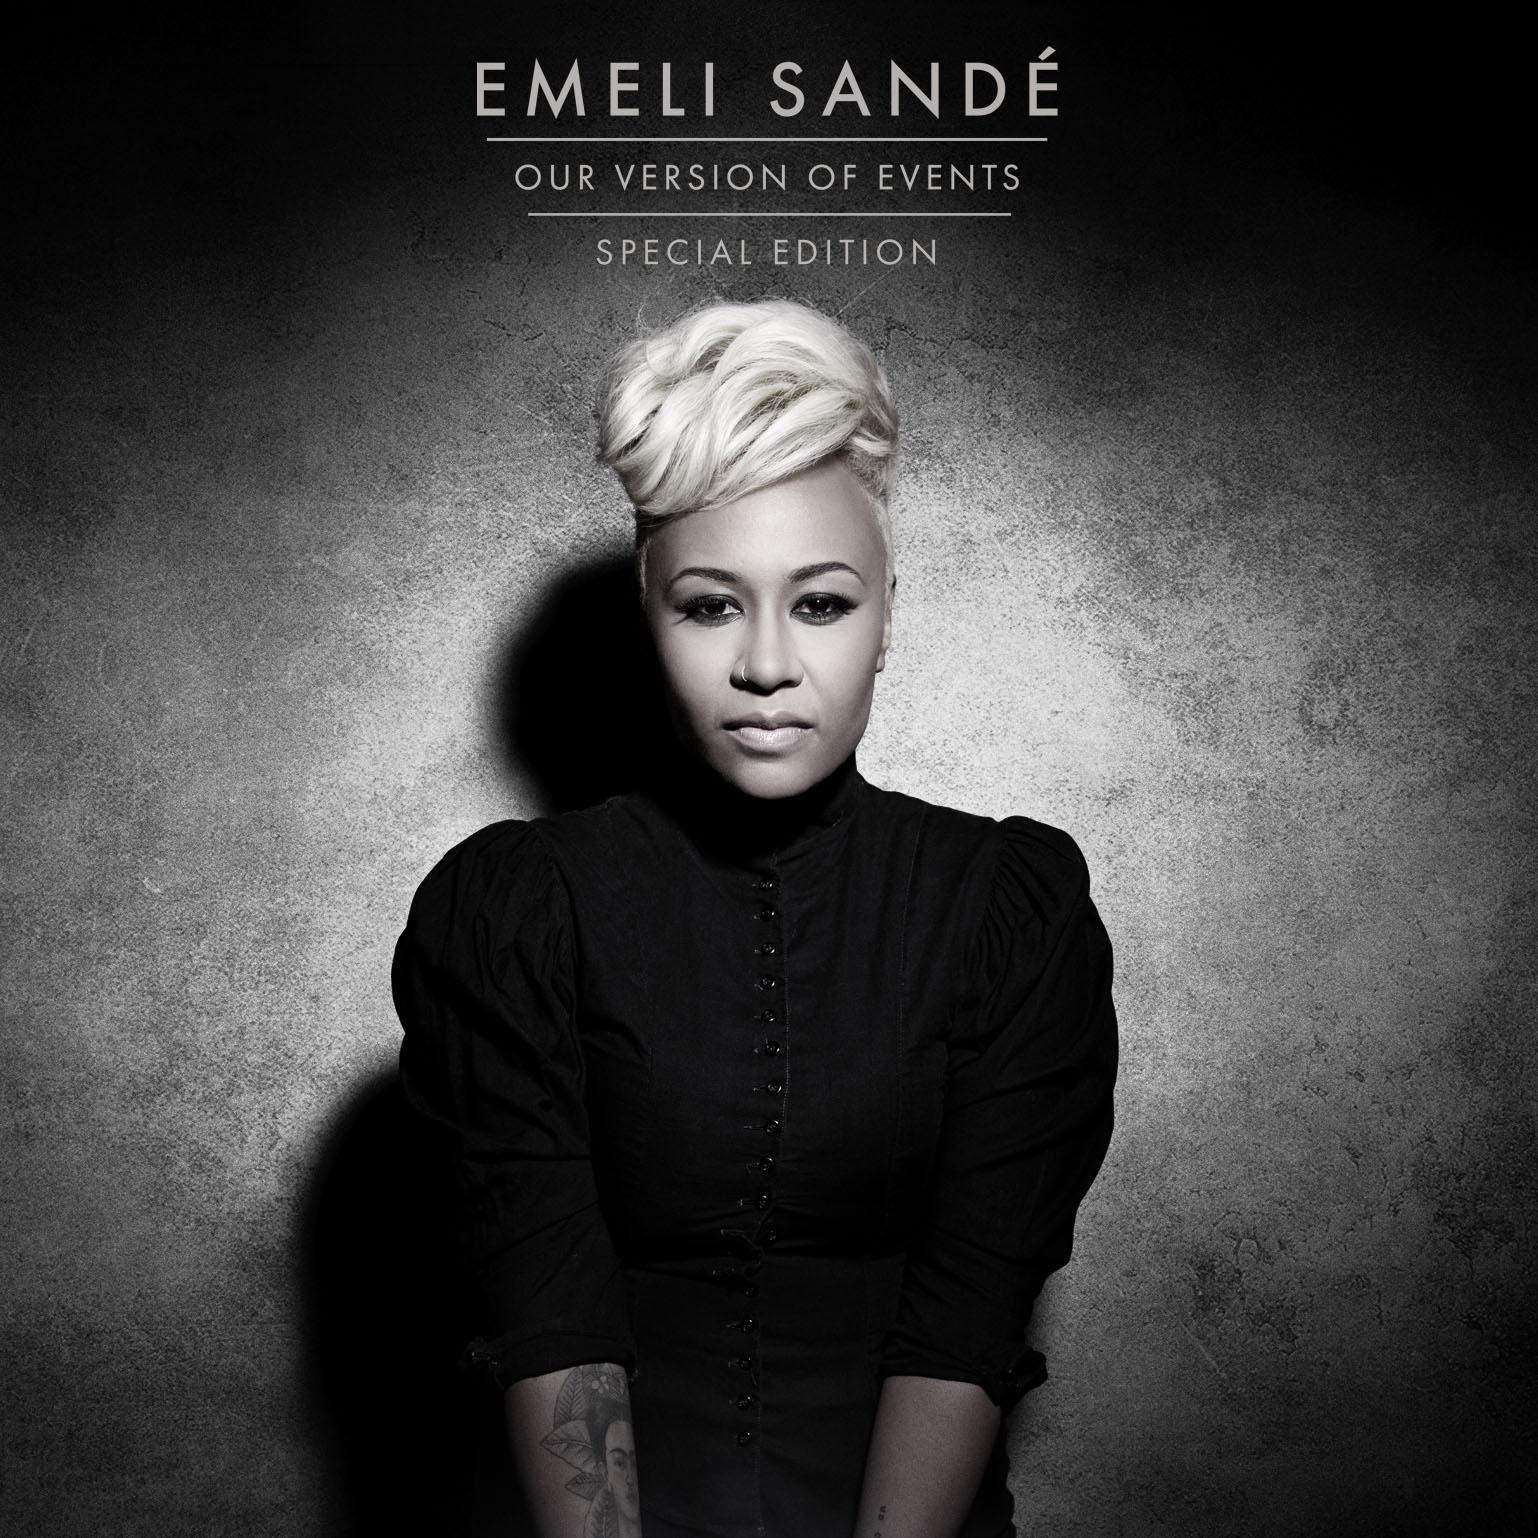 Emeli Sande - Our Version Of Events (Special Edition)